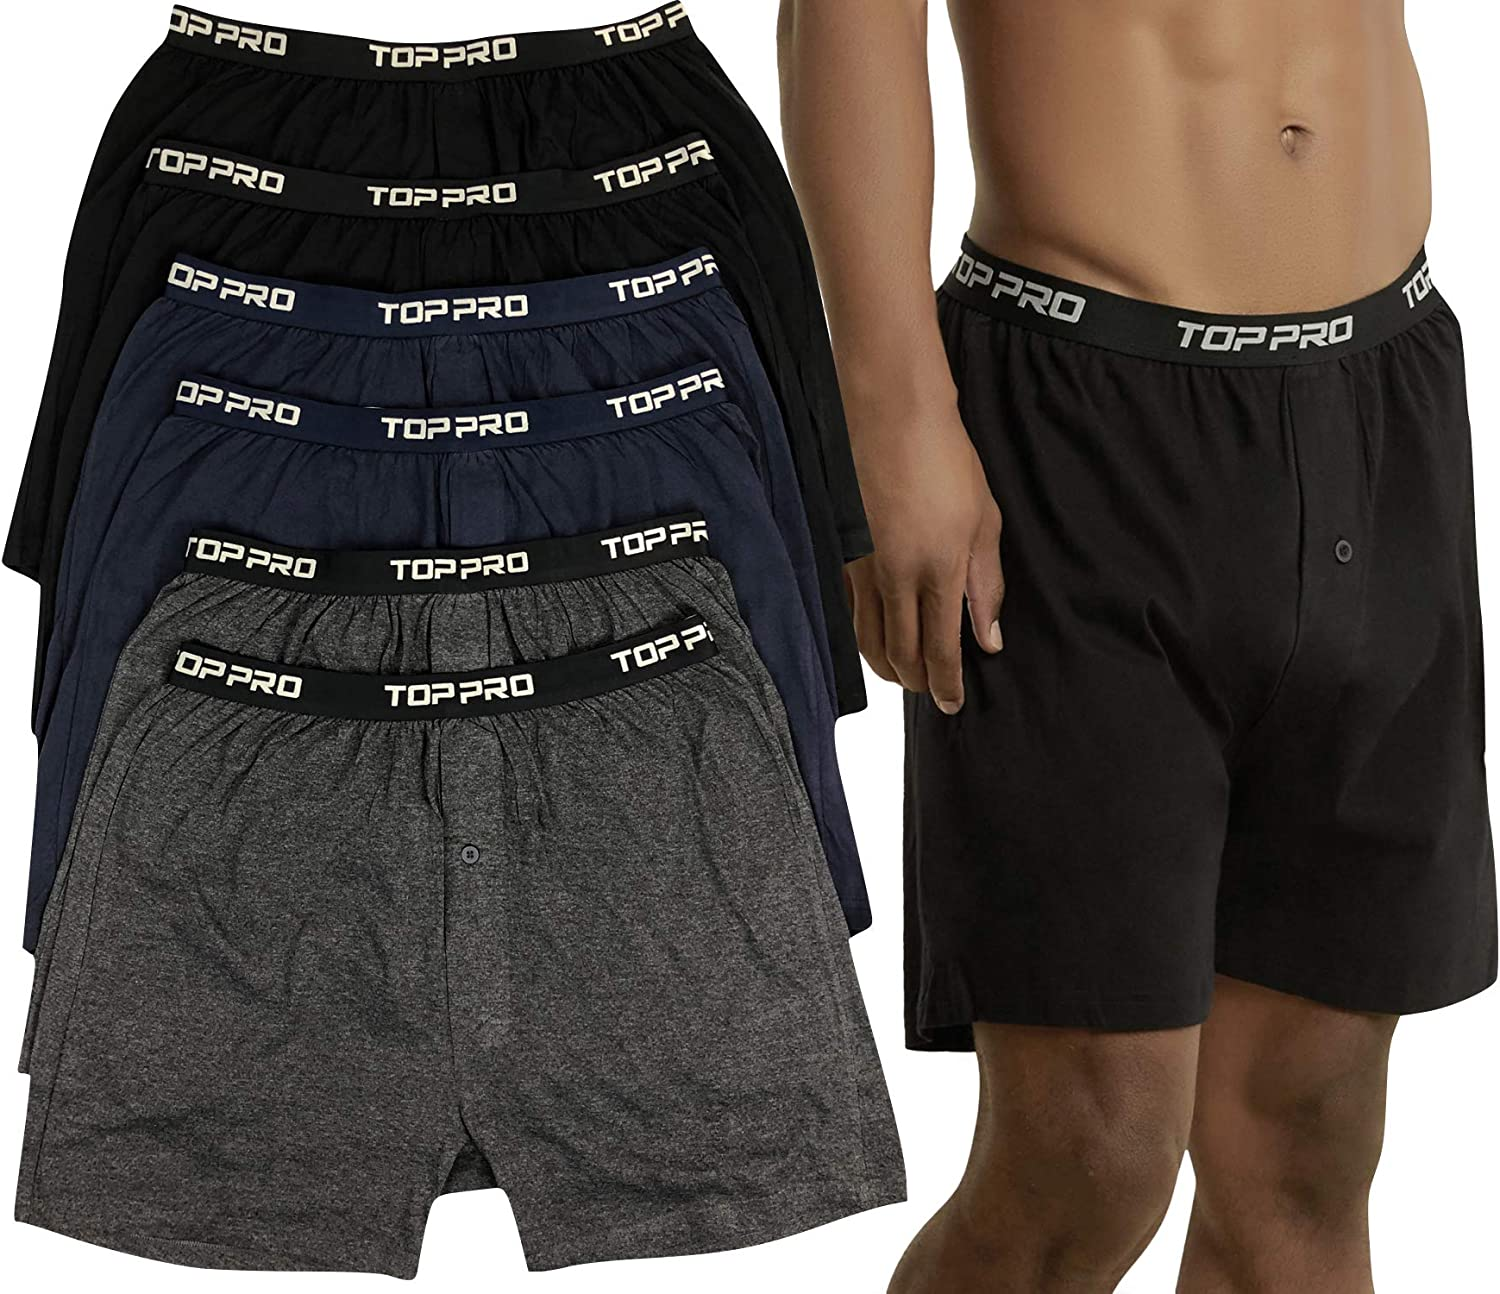 A4 A4/Â/N5296 Adult Tricot-Lined 9 Mesh Shorts Forest Large